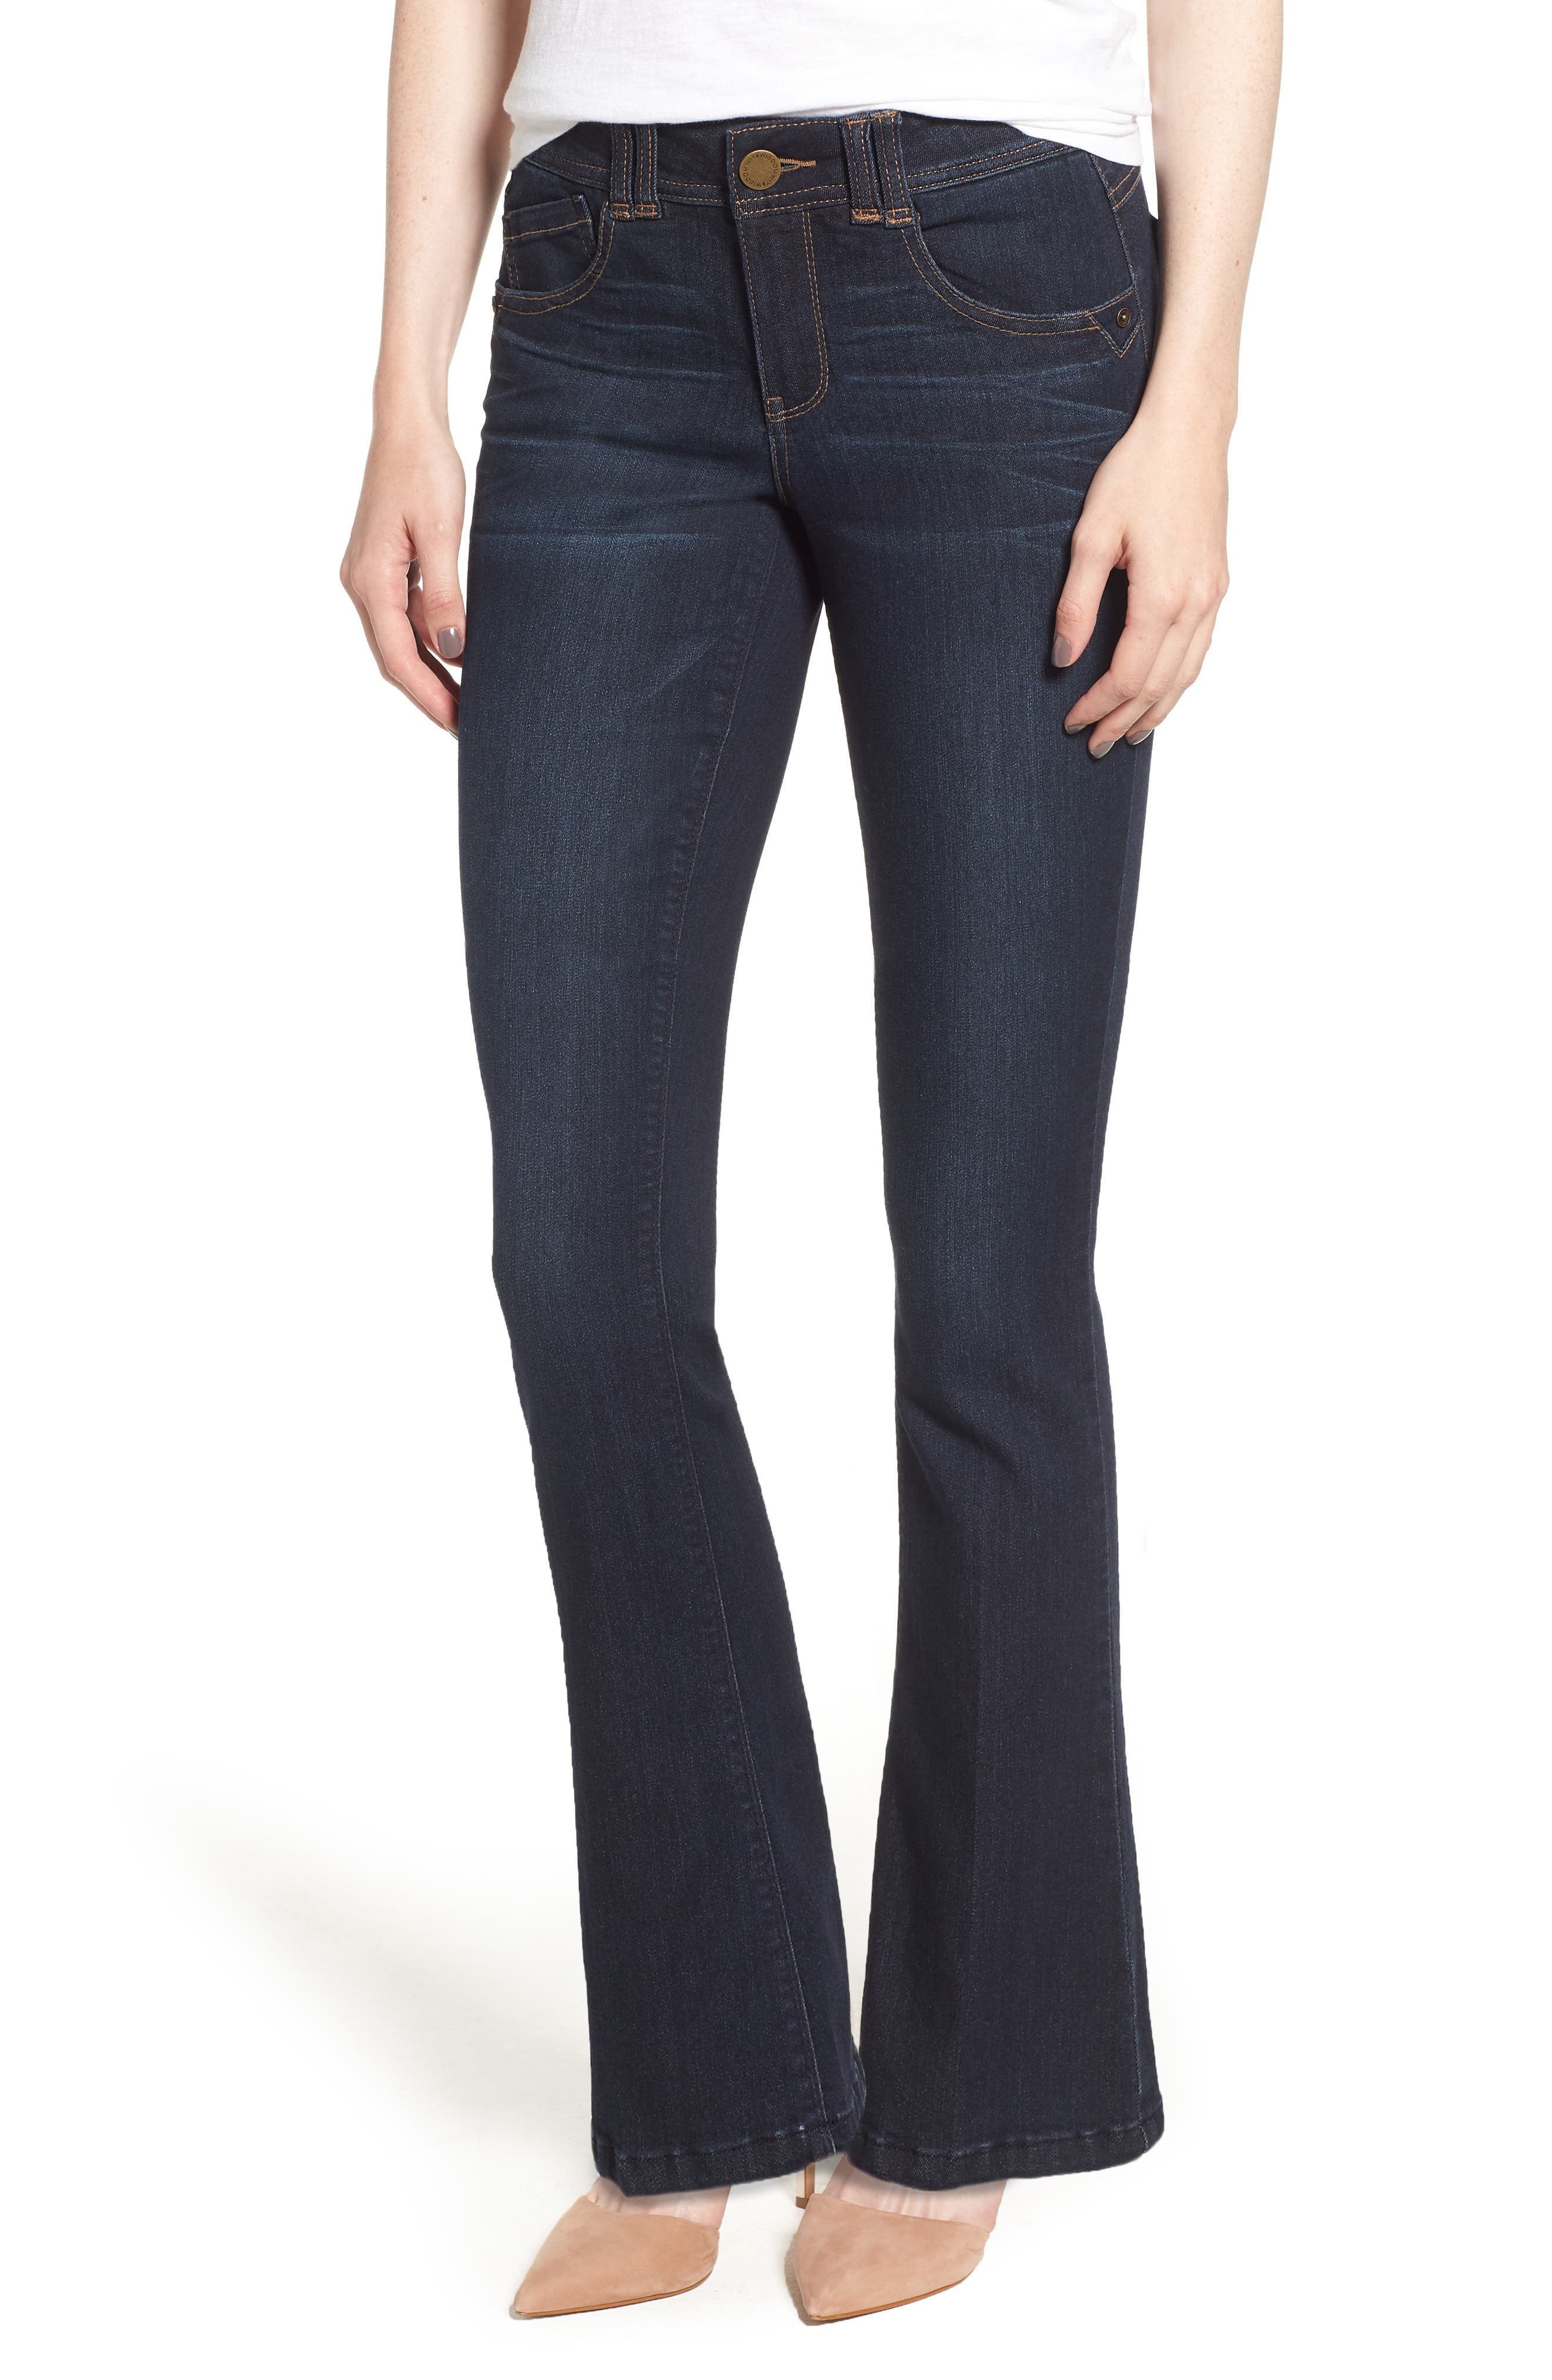 Ab-solution Itty Bitty Bootcut Jeans,                         Main,                         color, 402